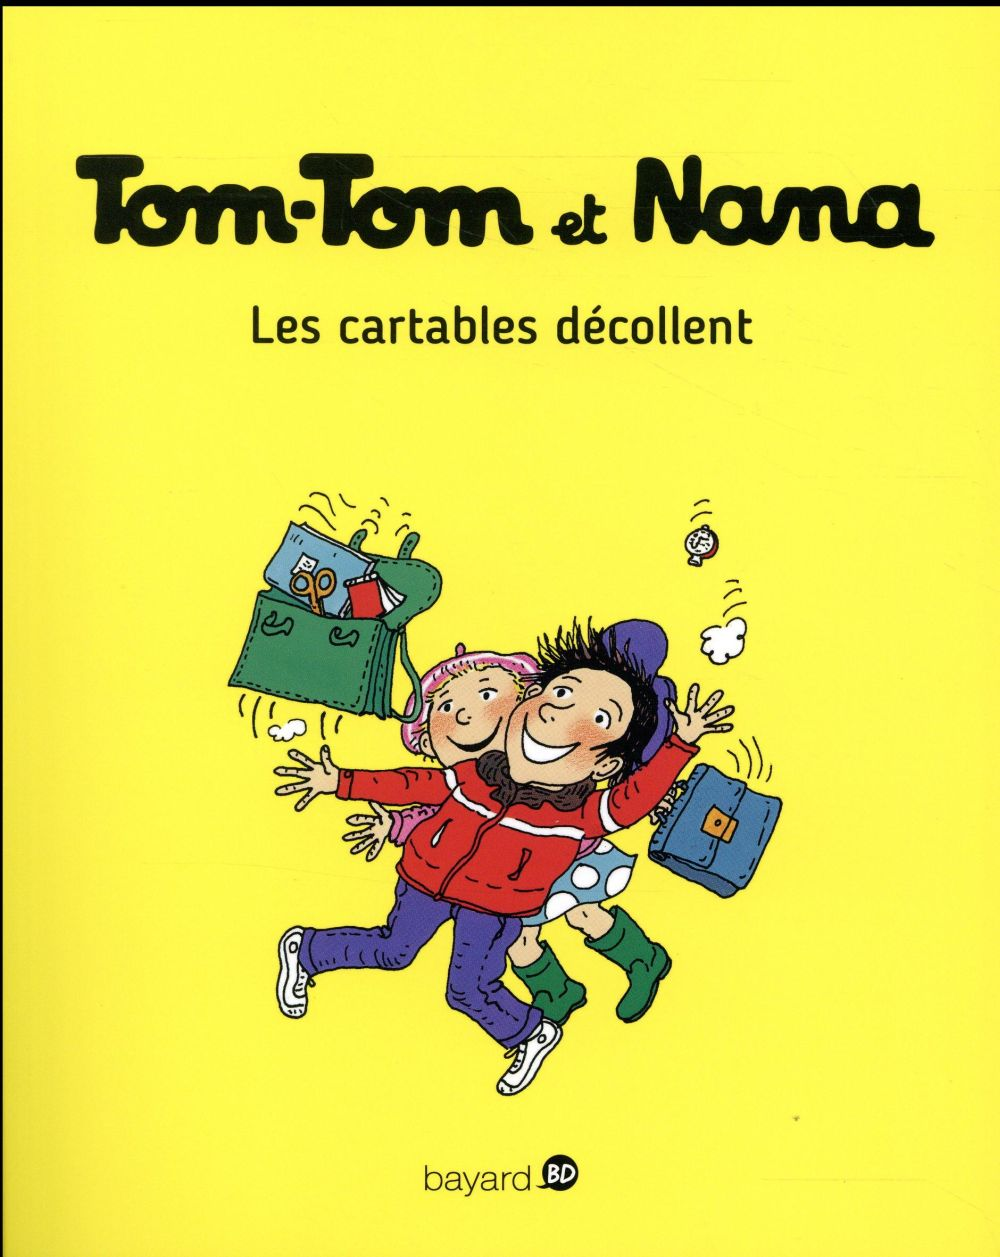 TOM-TOM ET NANA, TOME 04 - LES CARTABLES DECOLLENT